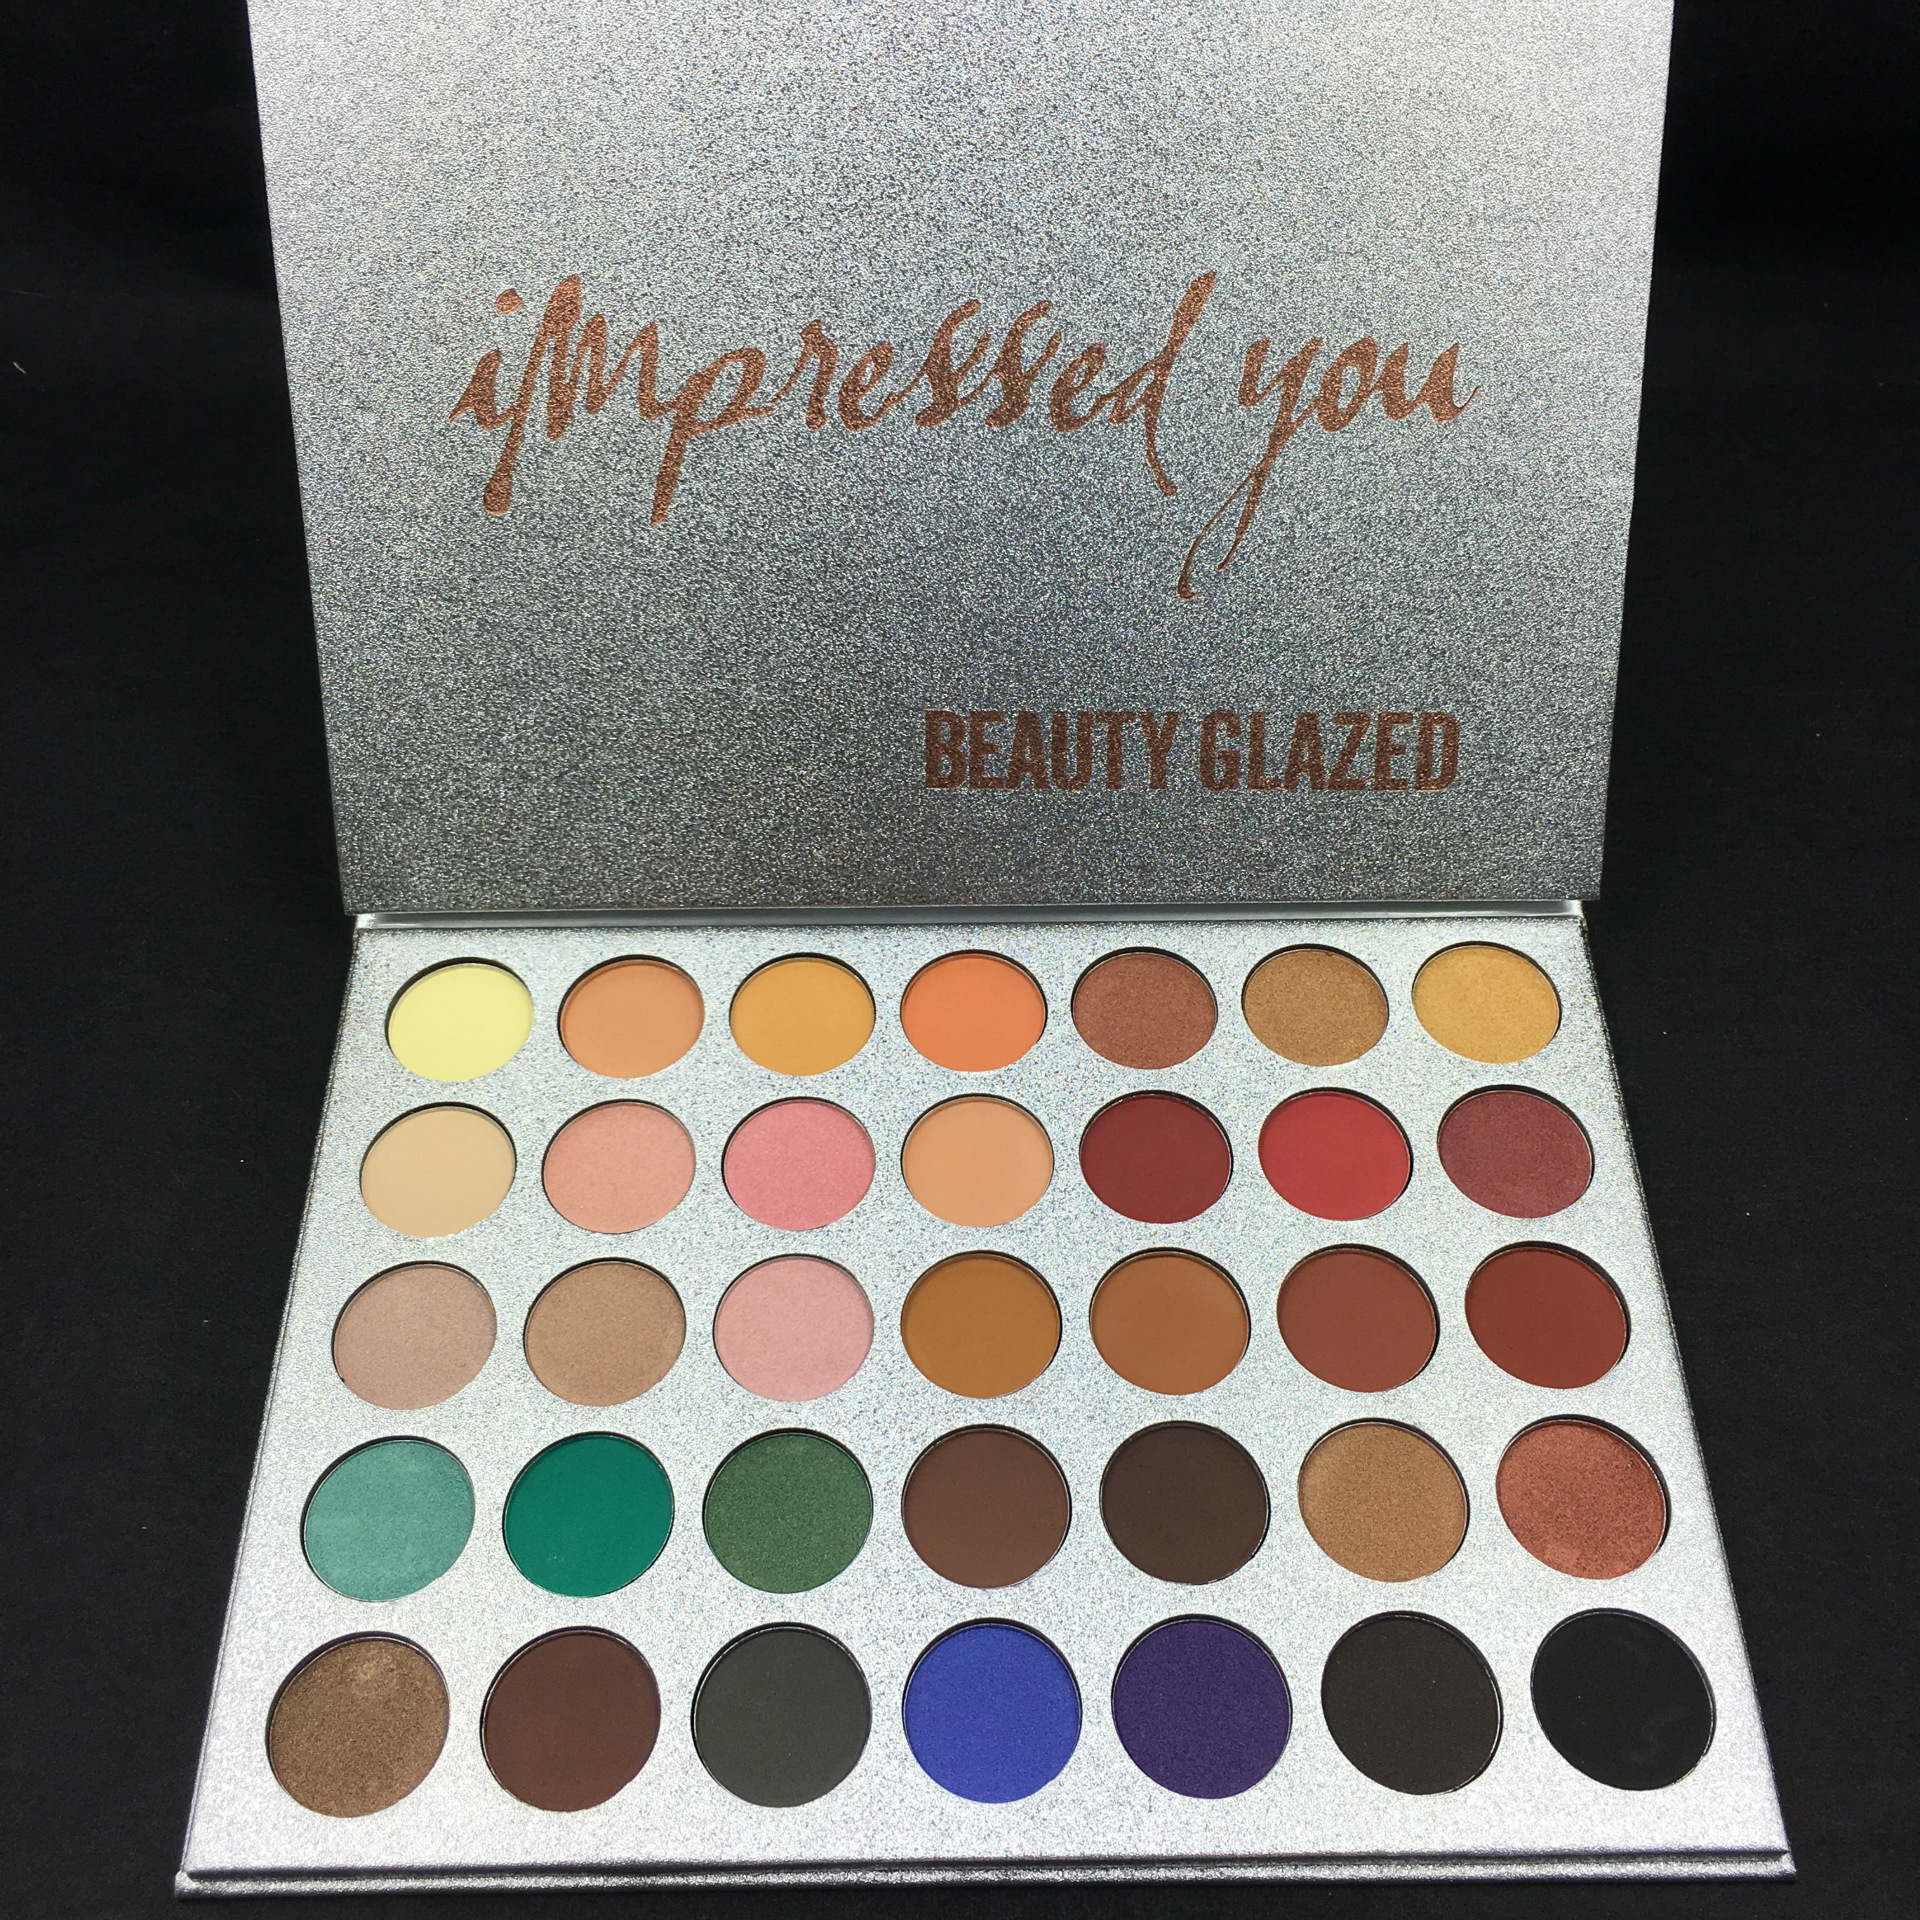 2018 Beauty Glazed 35 Colors Shimmer Matte Pigment Glitters Makeup Sunset Eye Shadow Palette Eyeshadow Palette Cosmestics beauty glazed brand 35 colors face makeup eye shadow palette eyeshadow pallete shades shimmer matte eye shadow beauty maquiagem